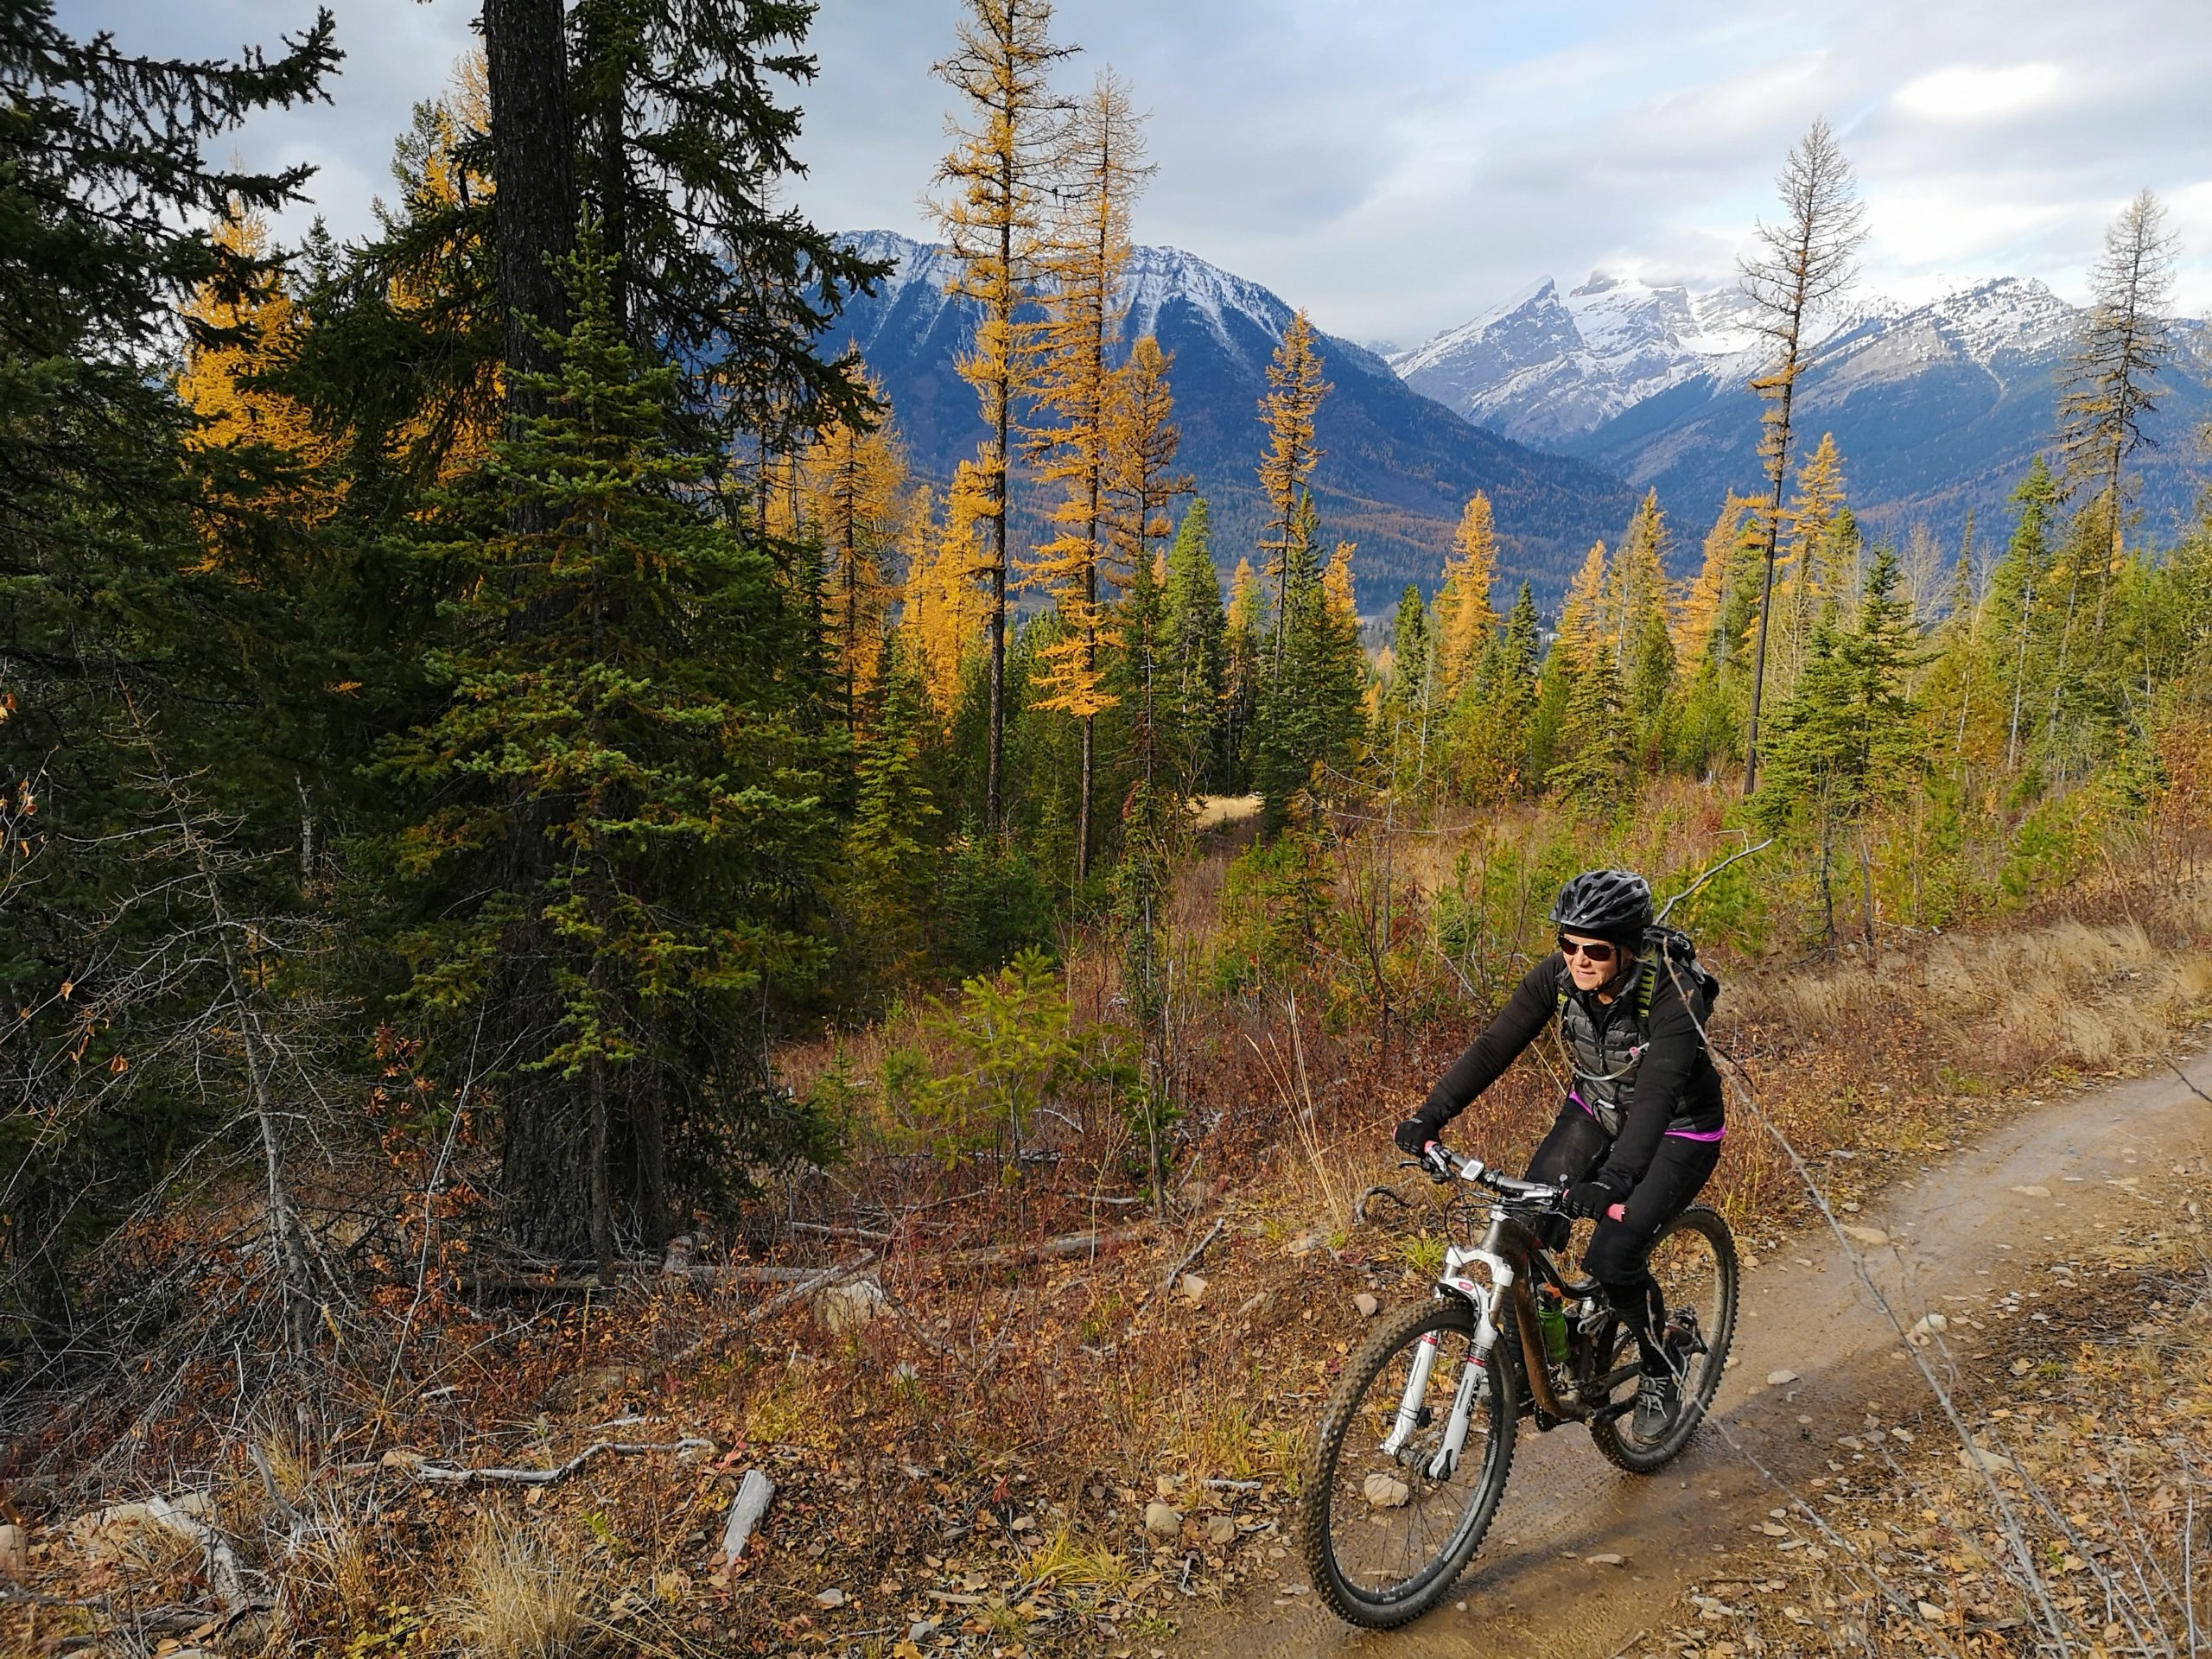 A woman mountain biking in the fall in forest with mountain range behind